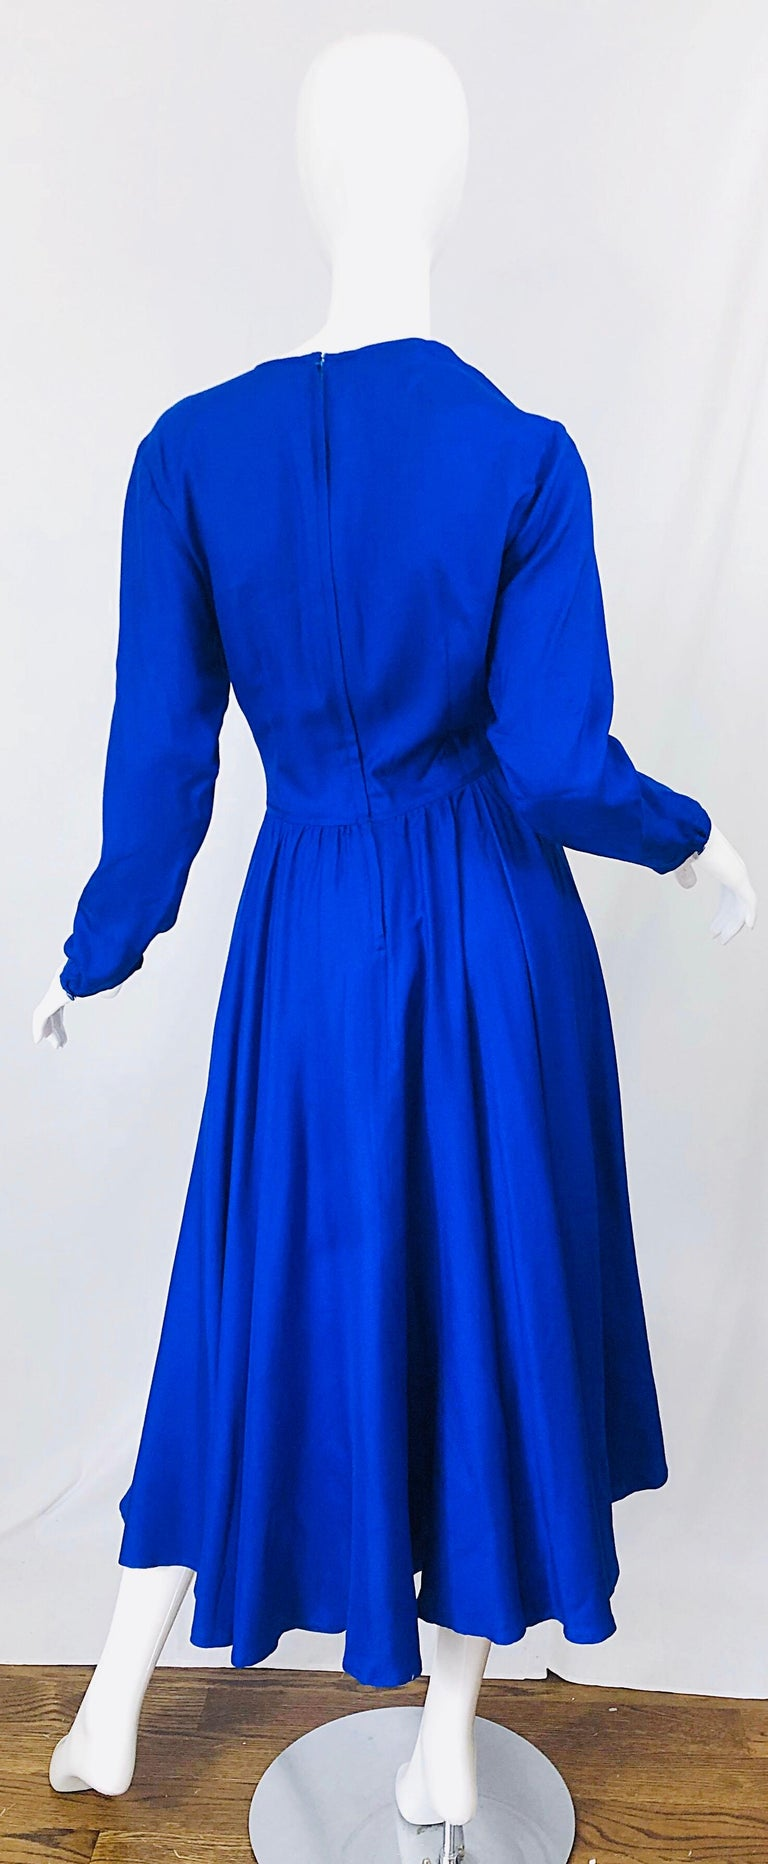 Vintage Dynasty Royal Blue Size 10 1970s Royal Bue Silk 70s Midi Dress In Excellent Condition For Sale In Chicago, IL